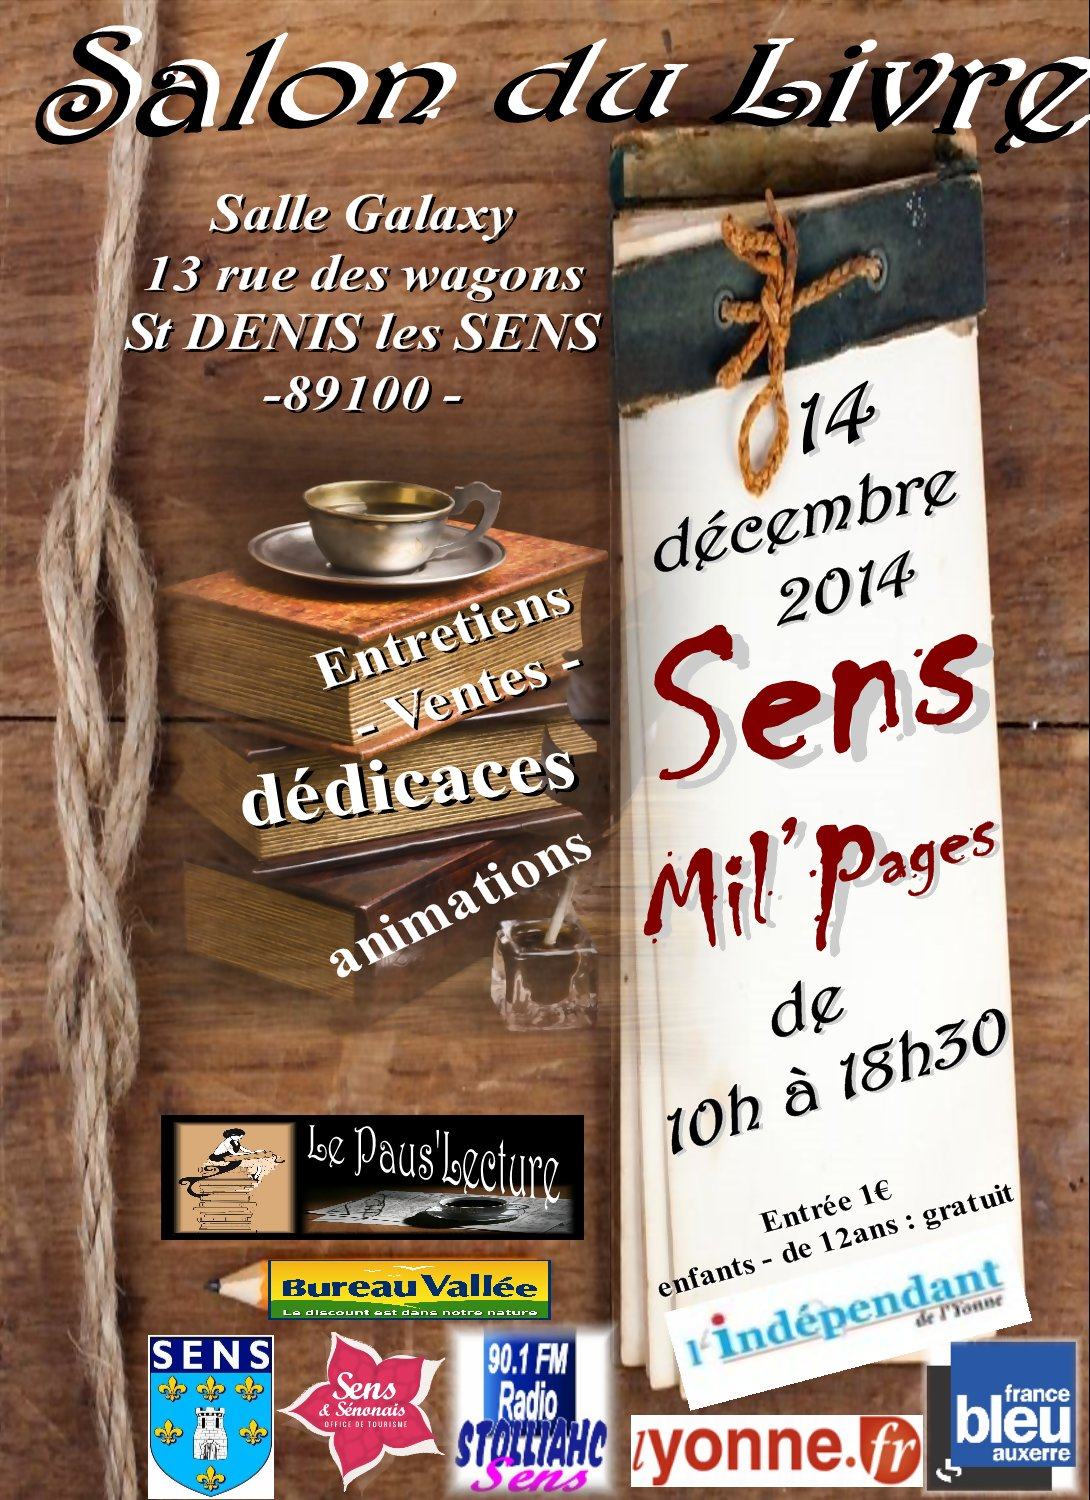 SENS Mil'Pages - 2014